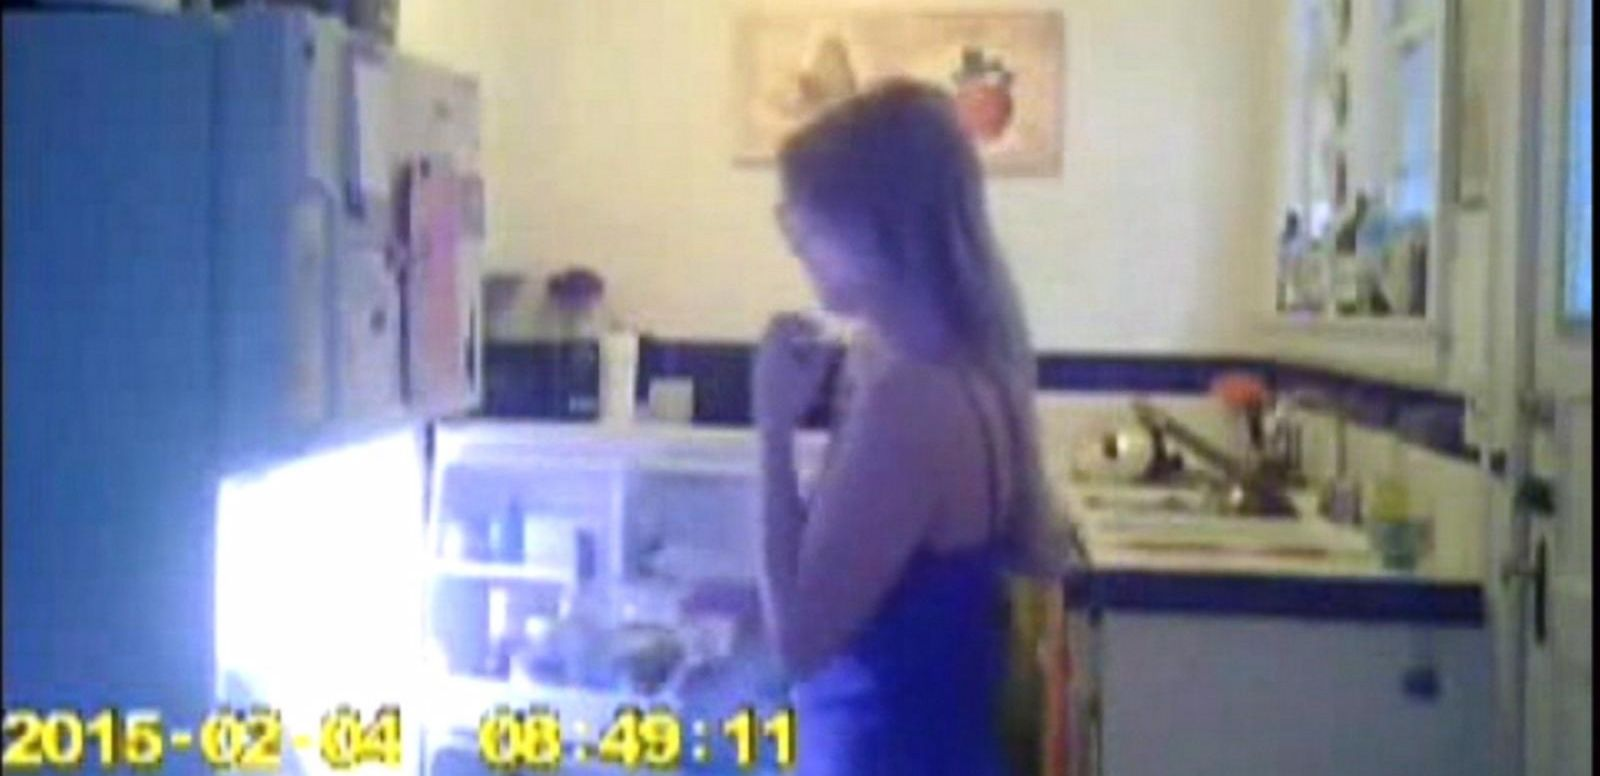 VIDEO: South Carolina Student Caught on Video Allegedly Poisoning Roommates' Food